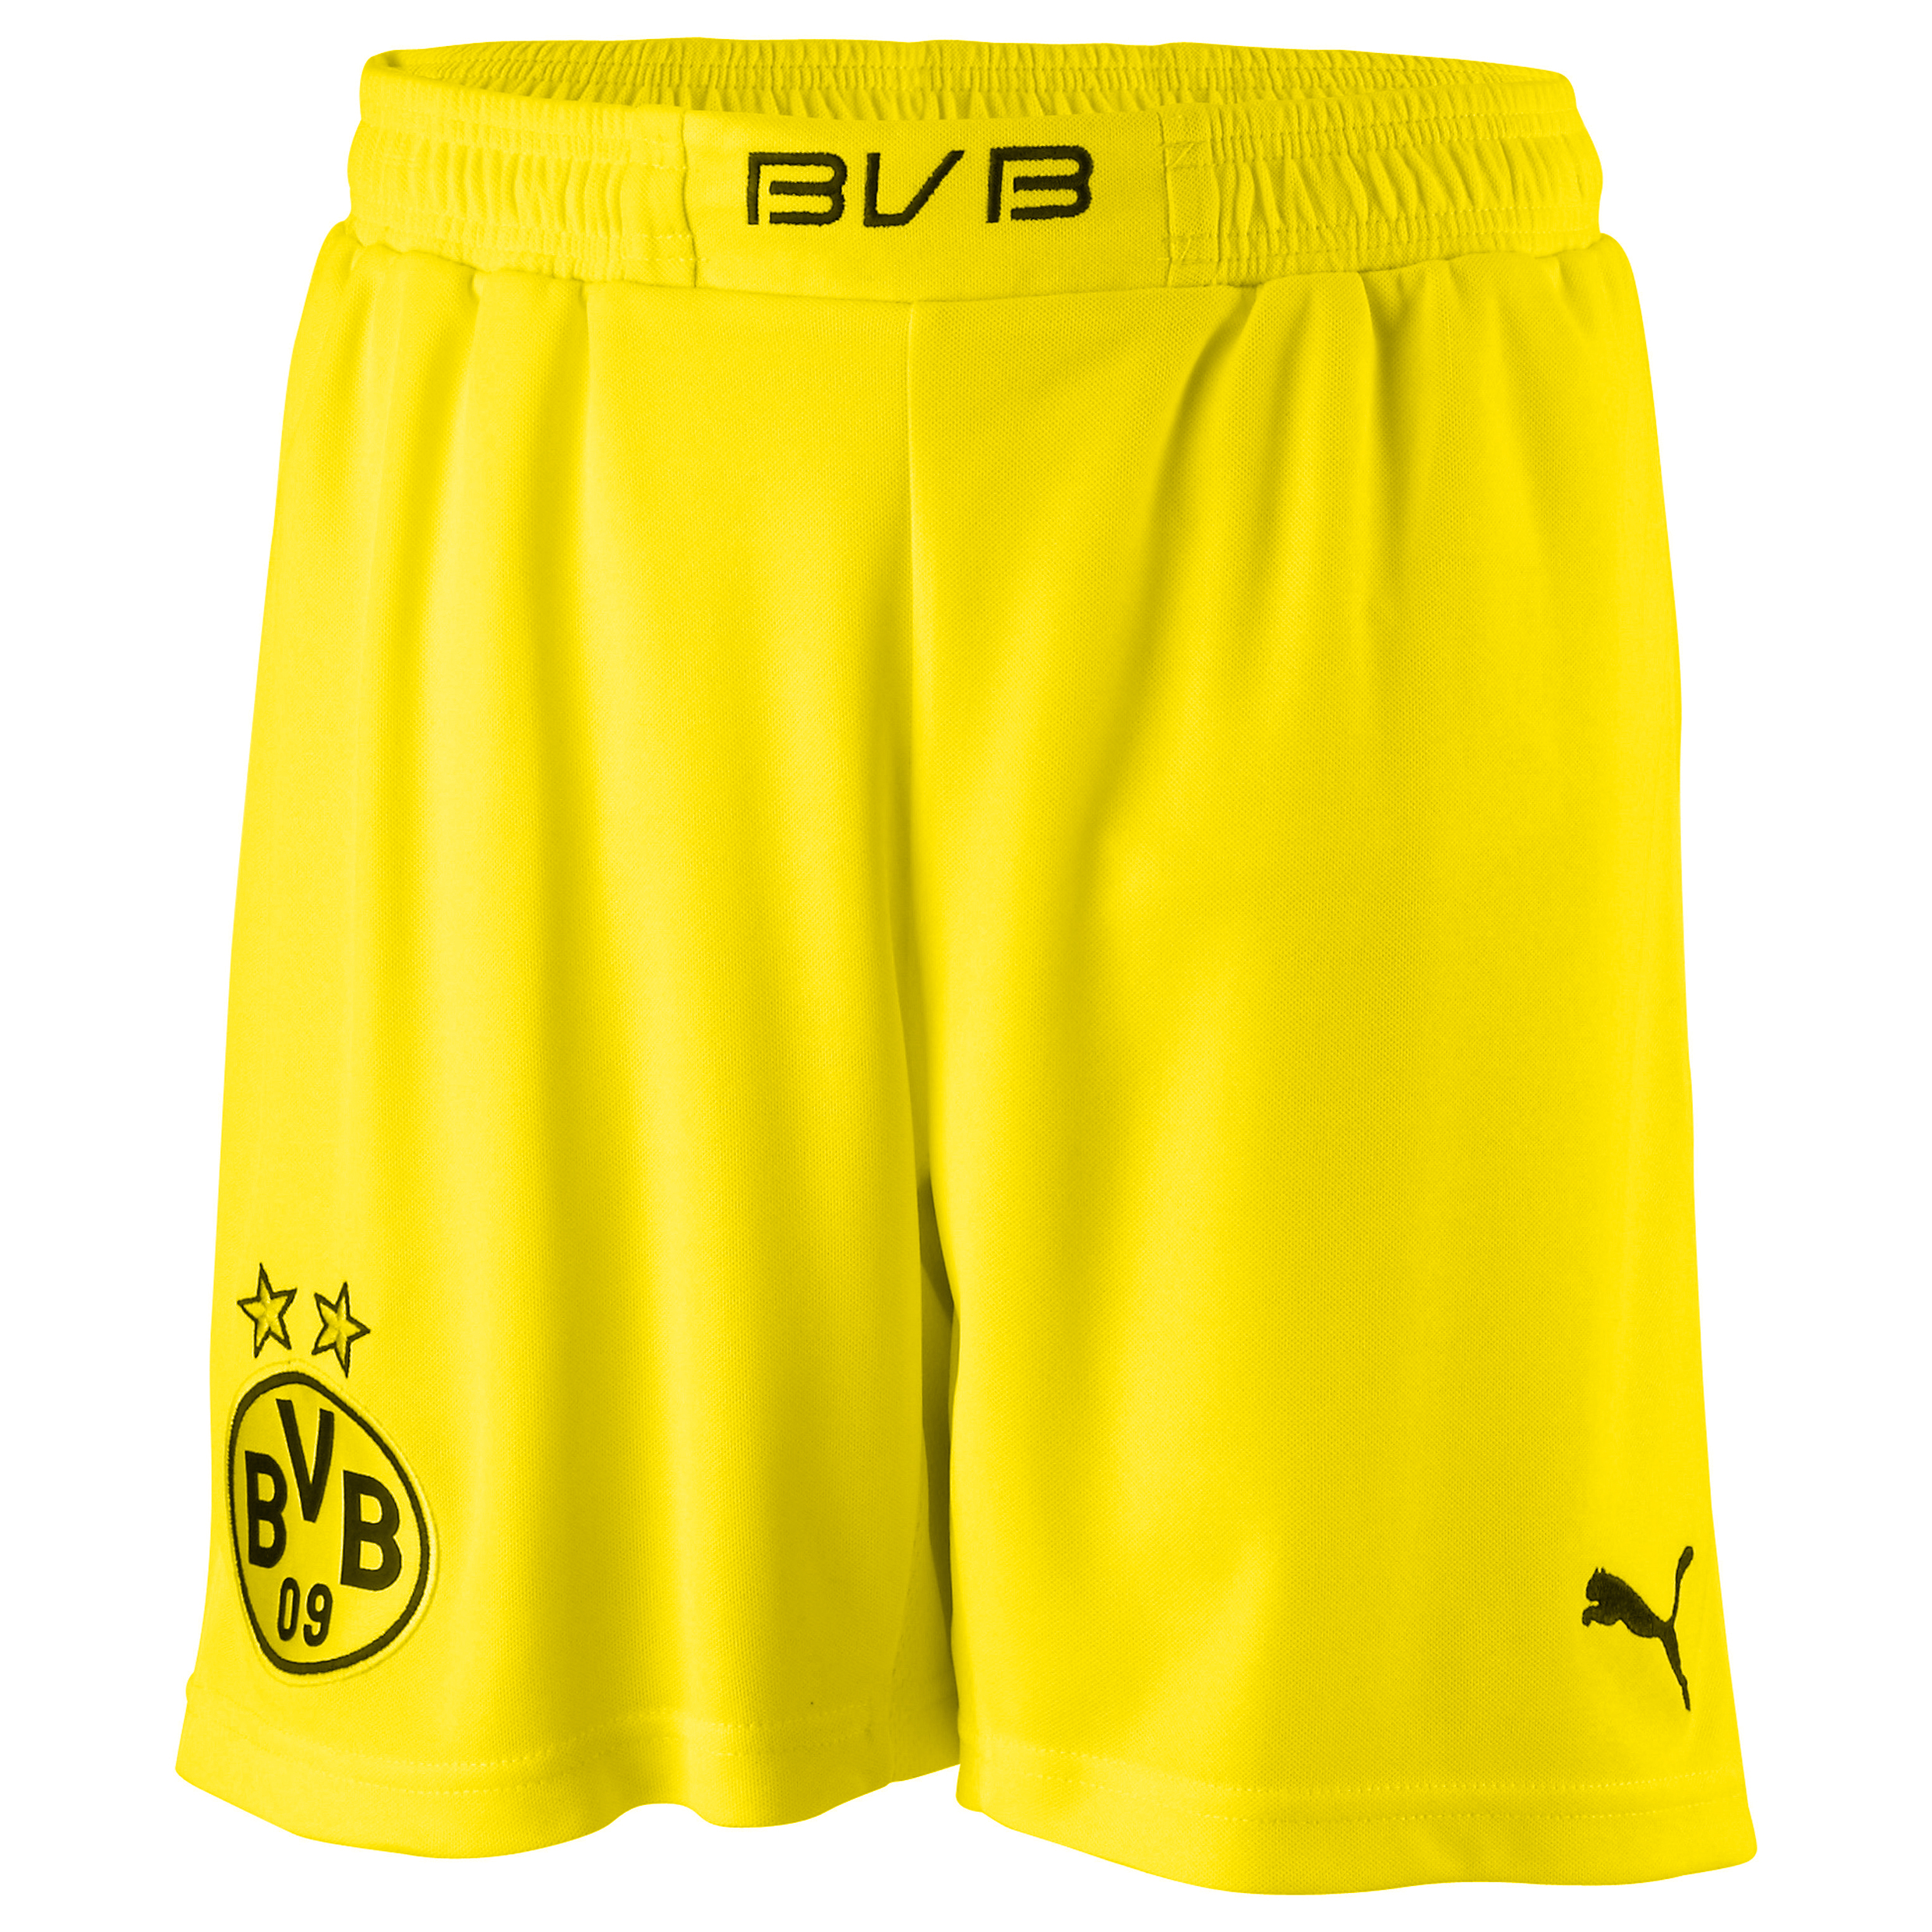 BVB Home Change Shorts 2013/14 - Kids